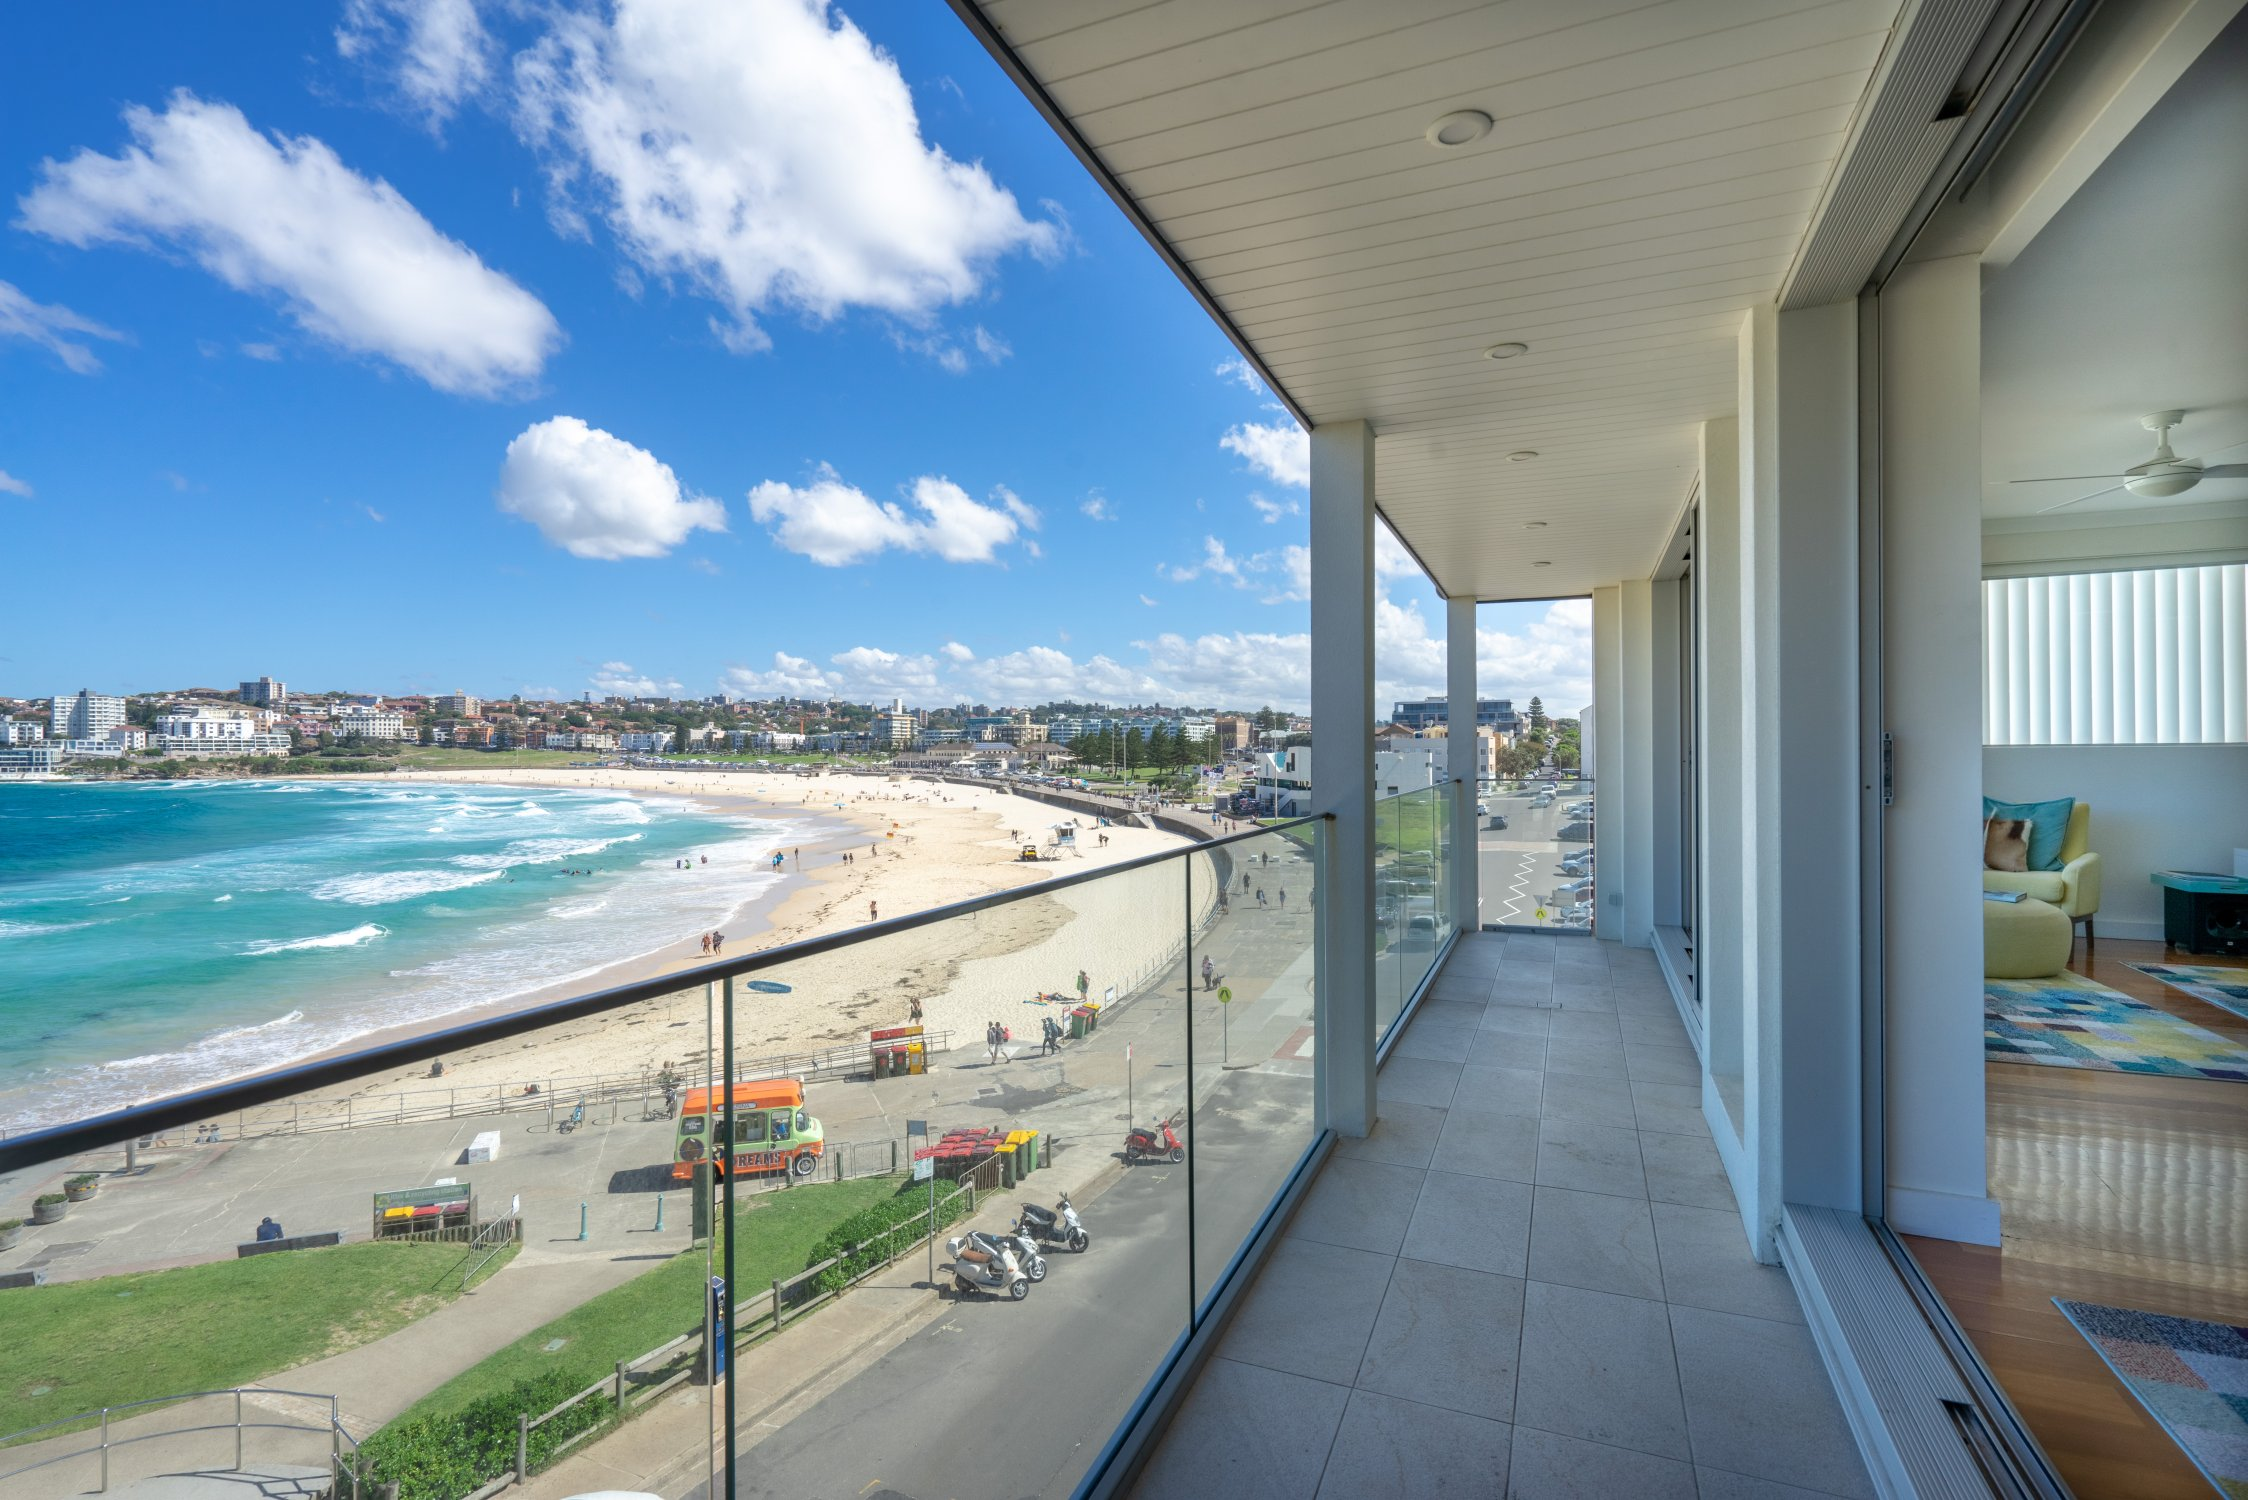 Kevin's place beachfront apartment. Bondi Beach Holiday Homes22.jpg